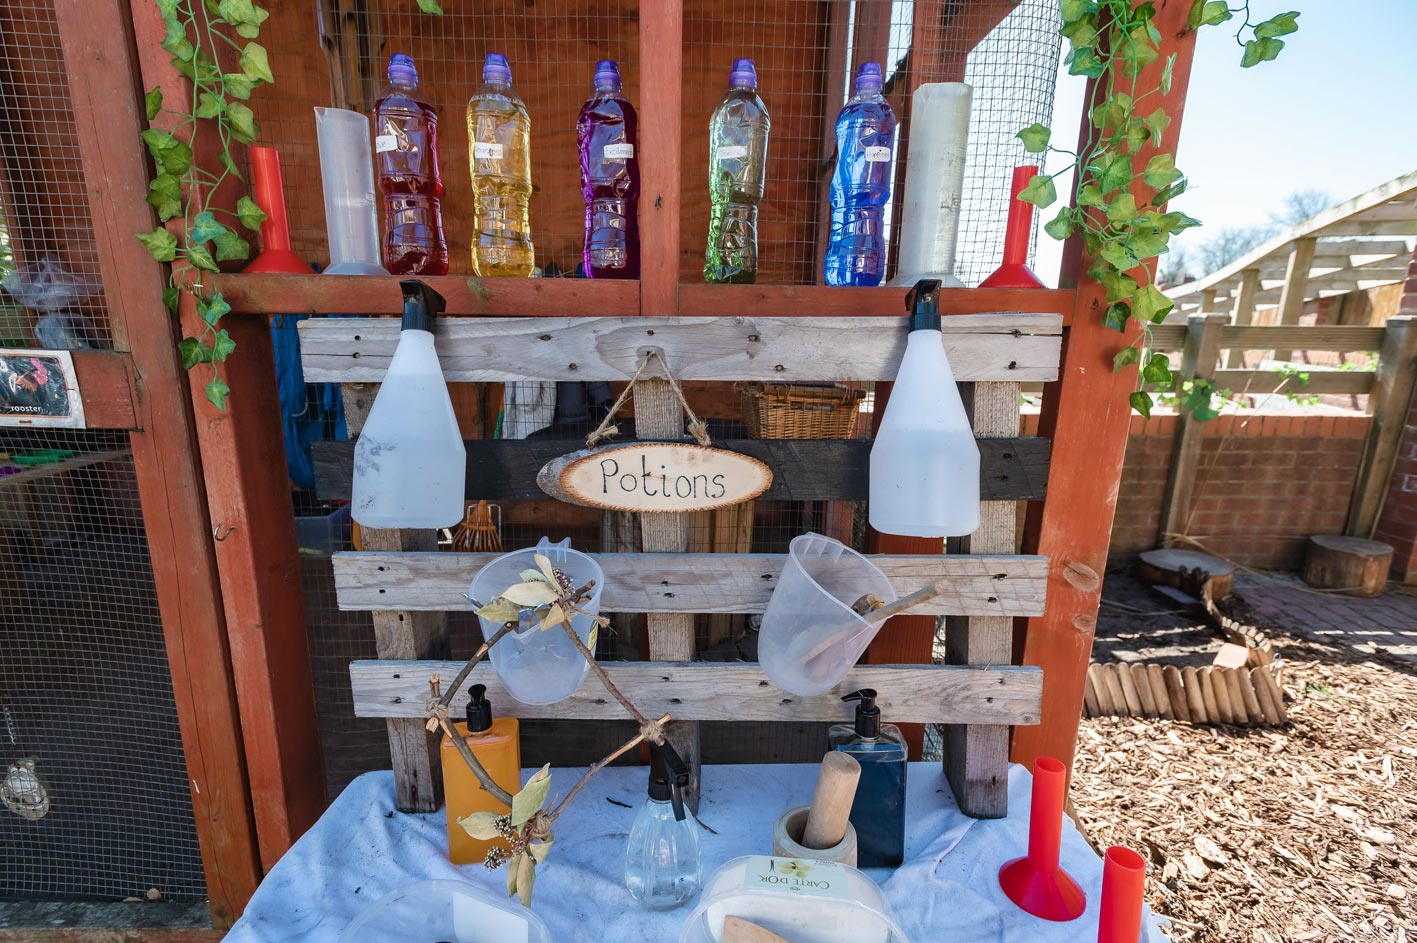 Some of the outdoor equipment allows children to mix & measure coloured water, use a pestle and mortar and to make pretend potions!